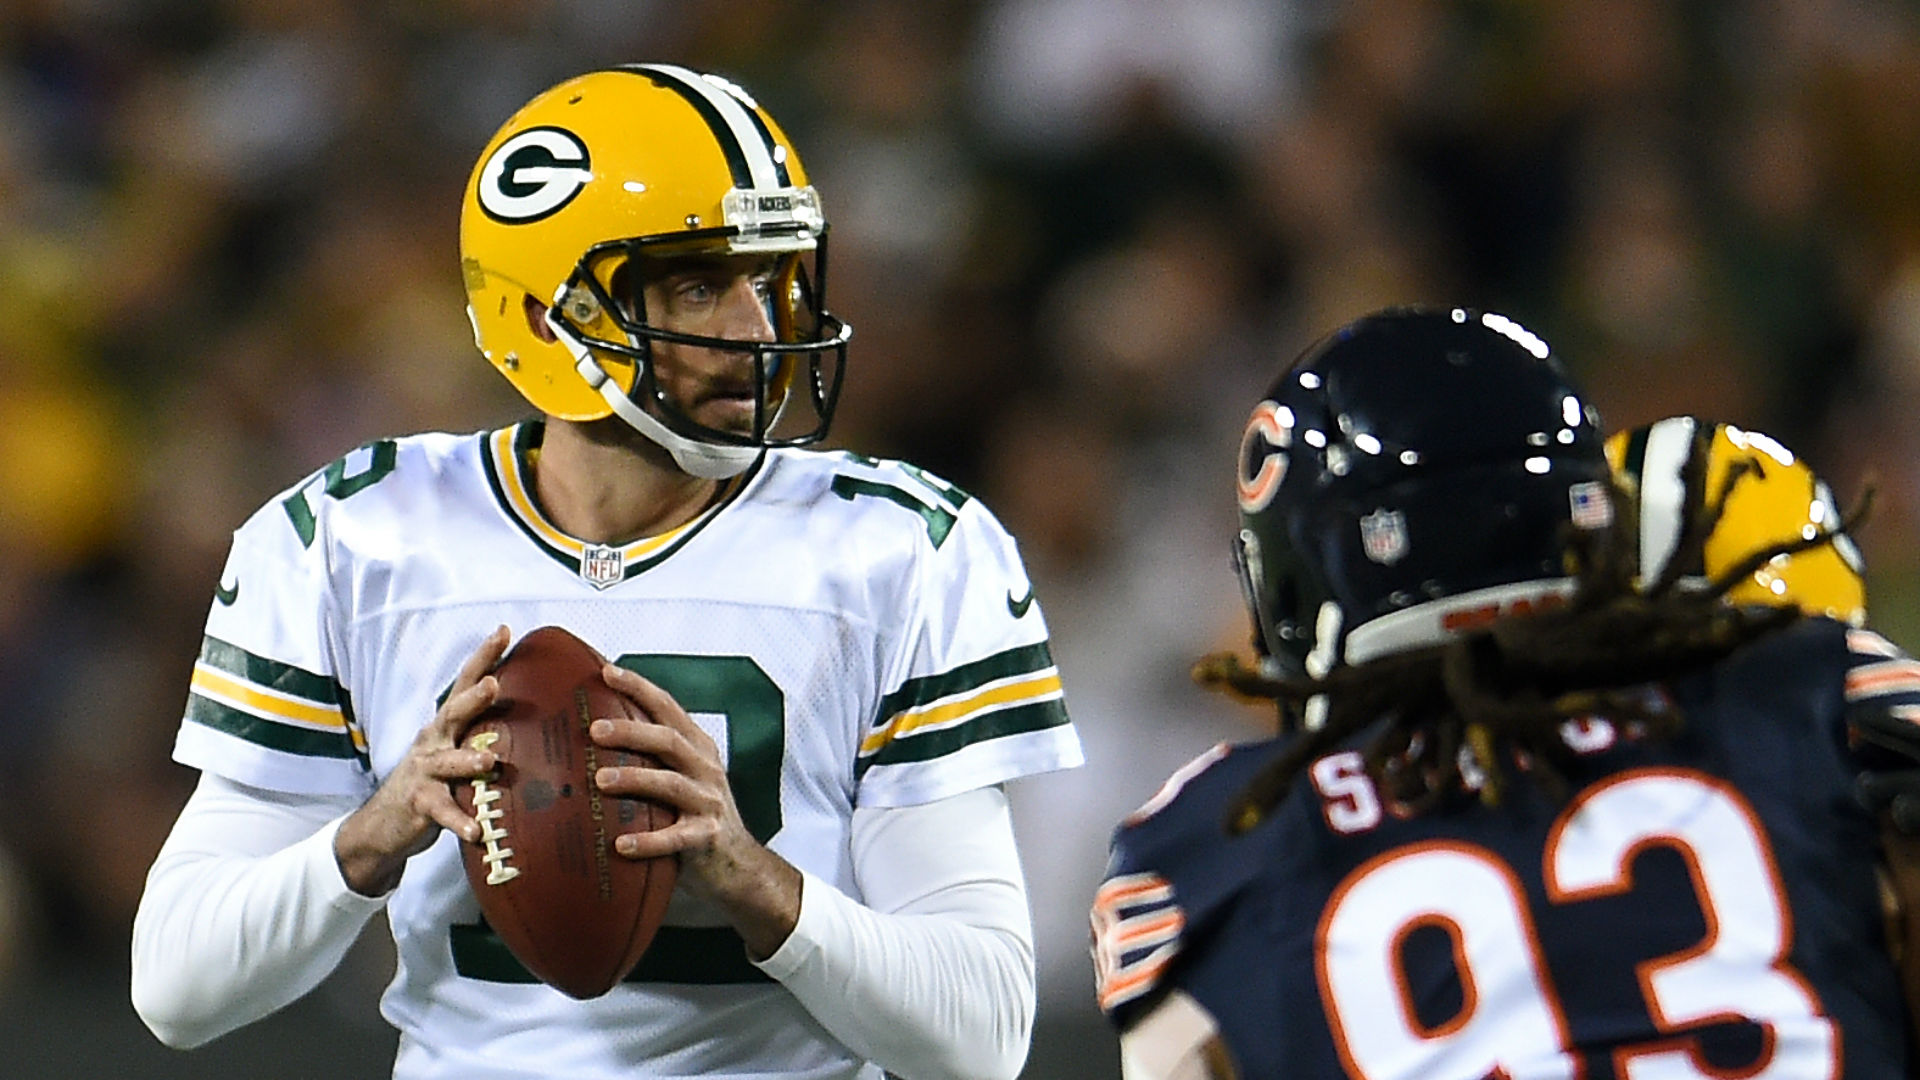 Packers vs. Bears: How to watch, live stream Thursday Night Football